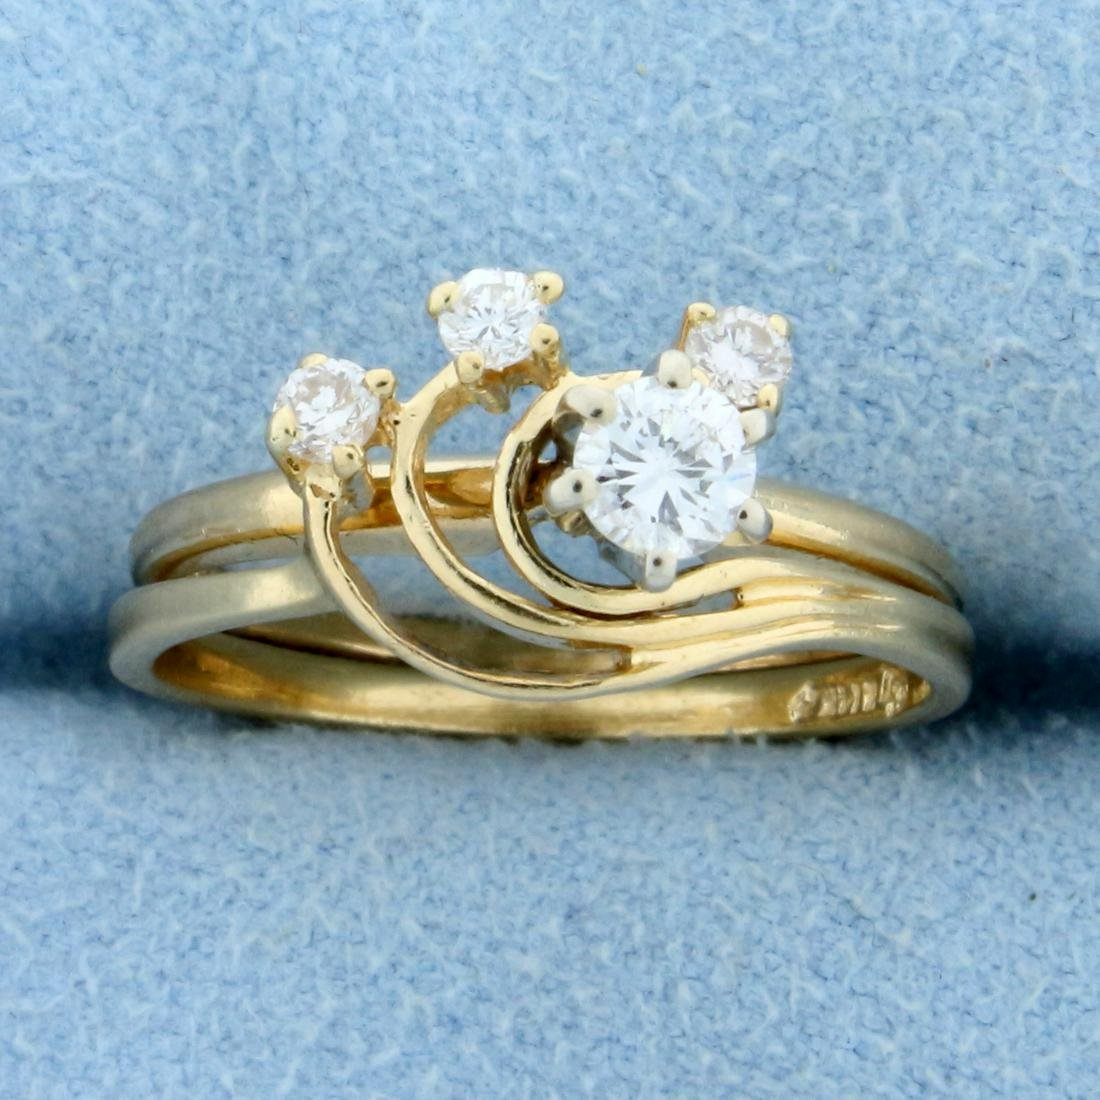 Unique Modern Design Diamond Ring in 14K Yellow Gold